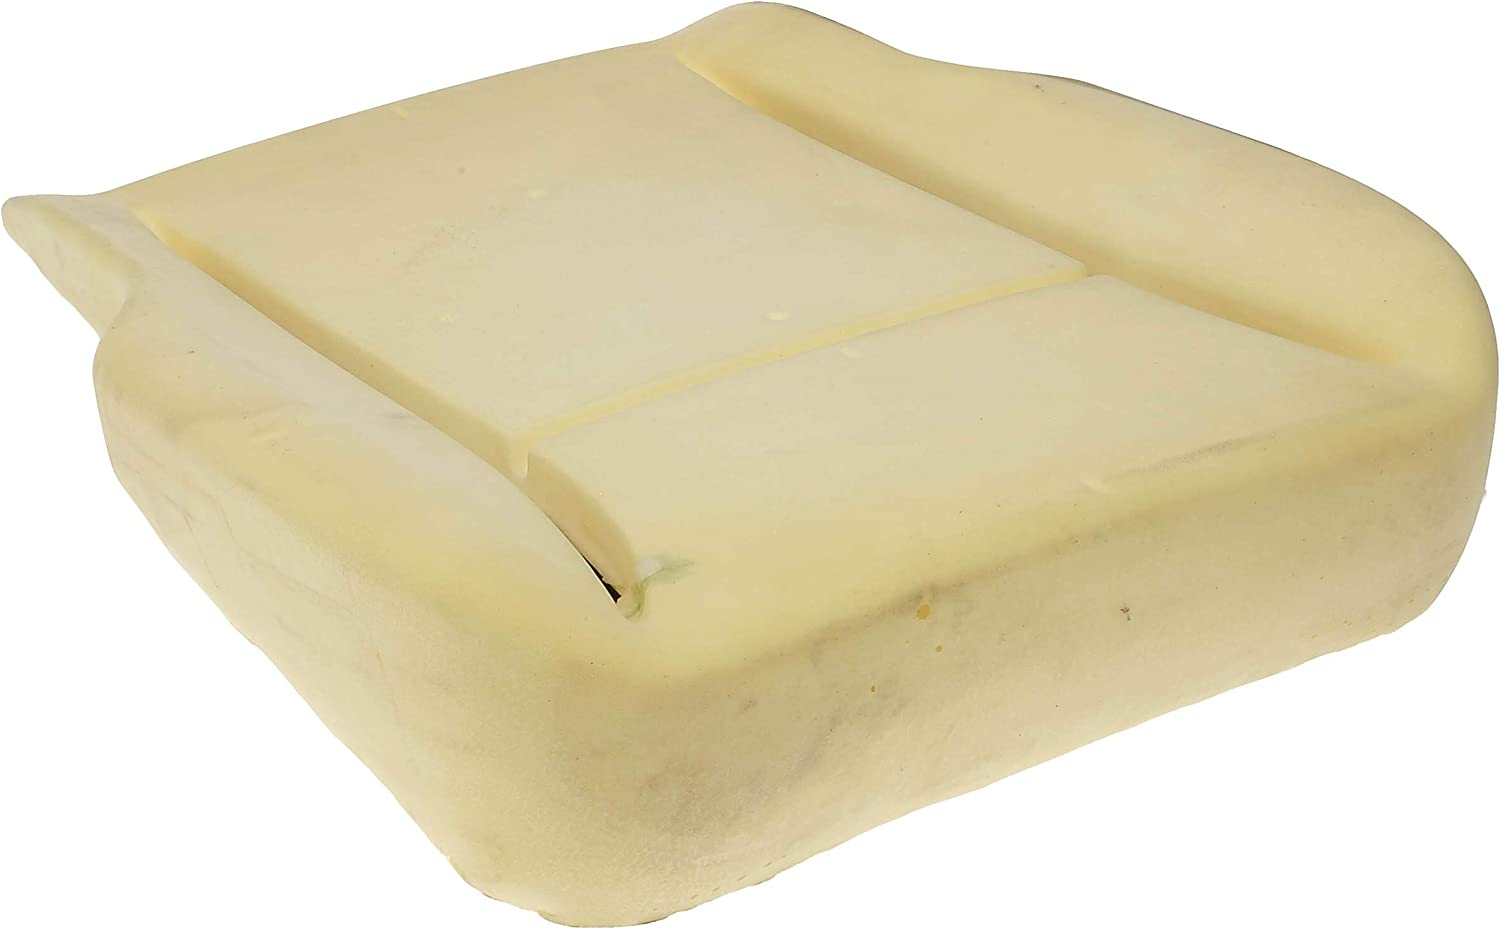 Dorman 926-896 Driver Side Seat Cushion Pad for Select Dodge Models